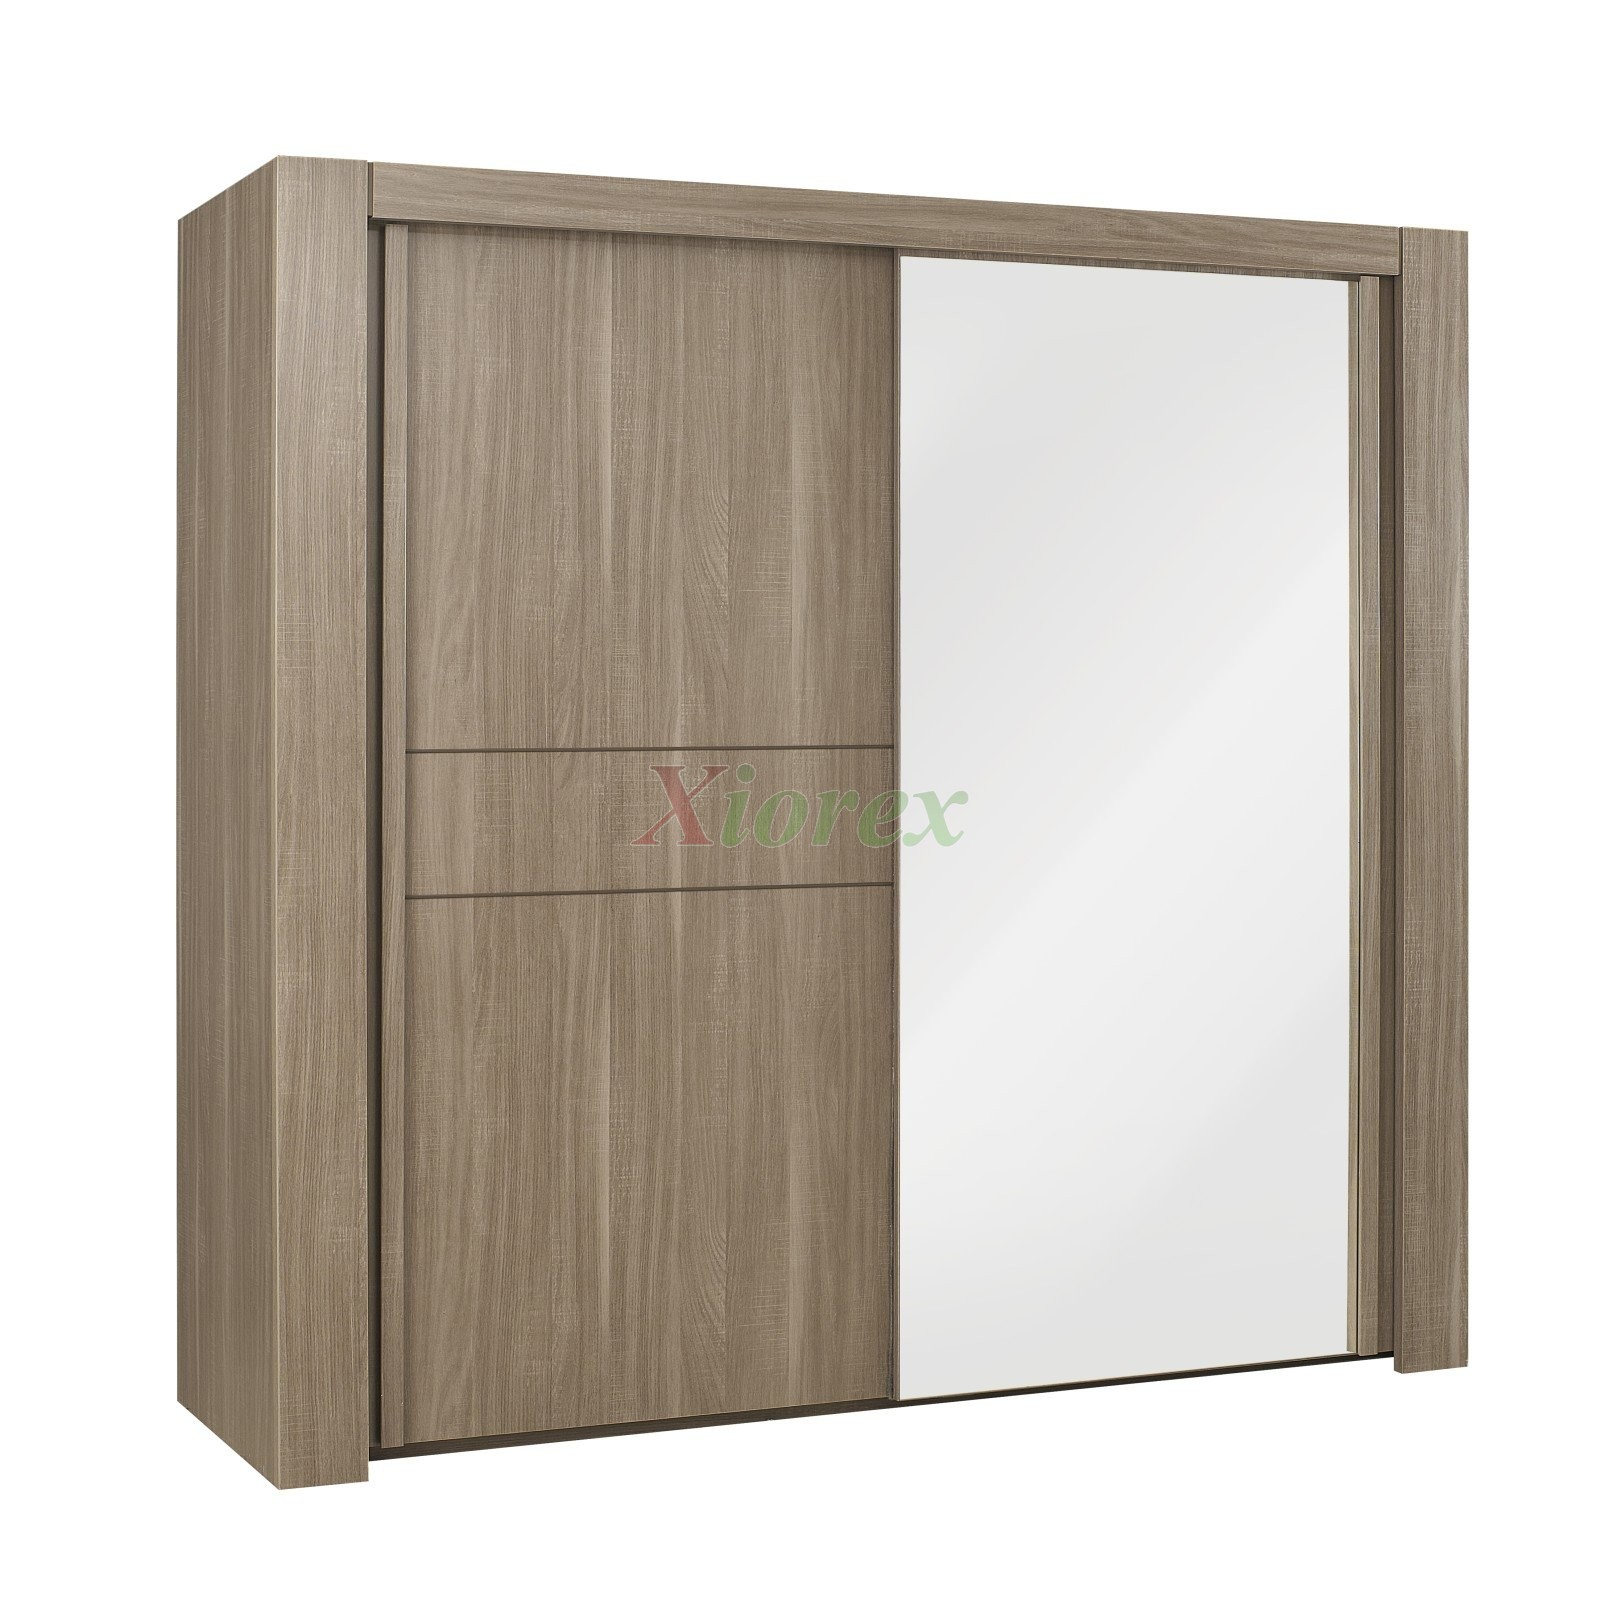 Sliding Door Wardrobe 98 In For Gami Moka Master Bedroom Set Xiorex